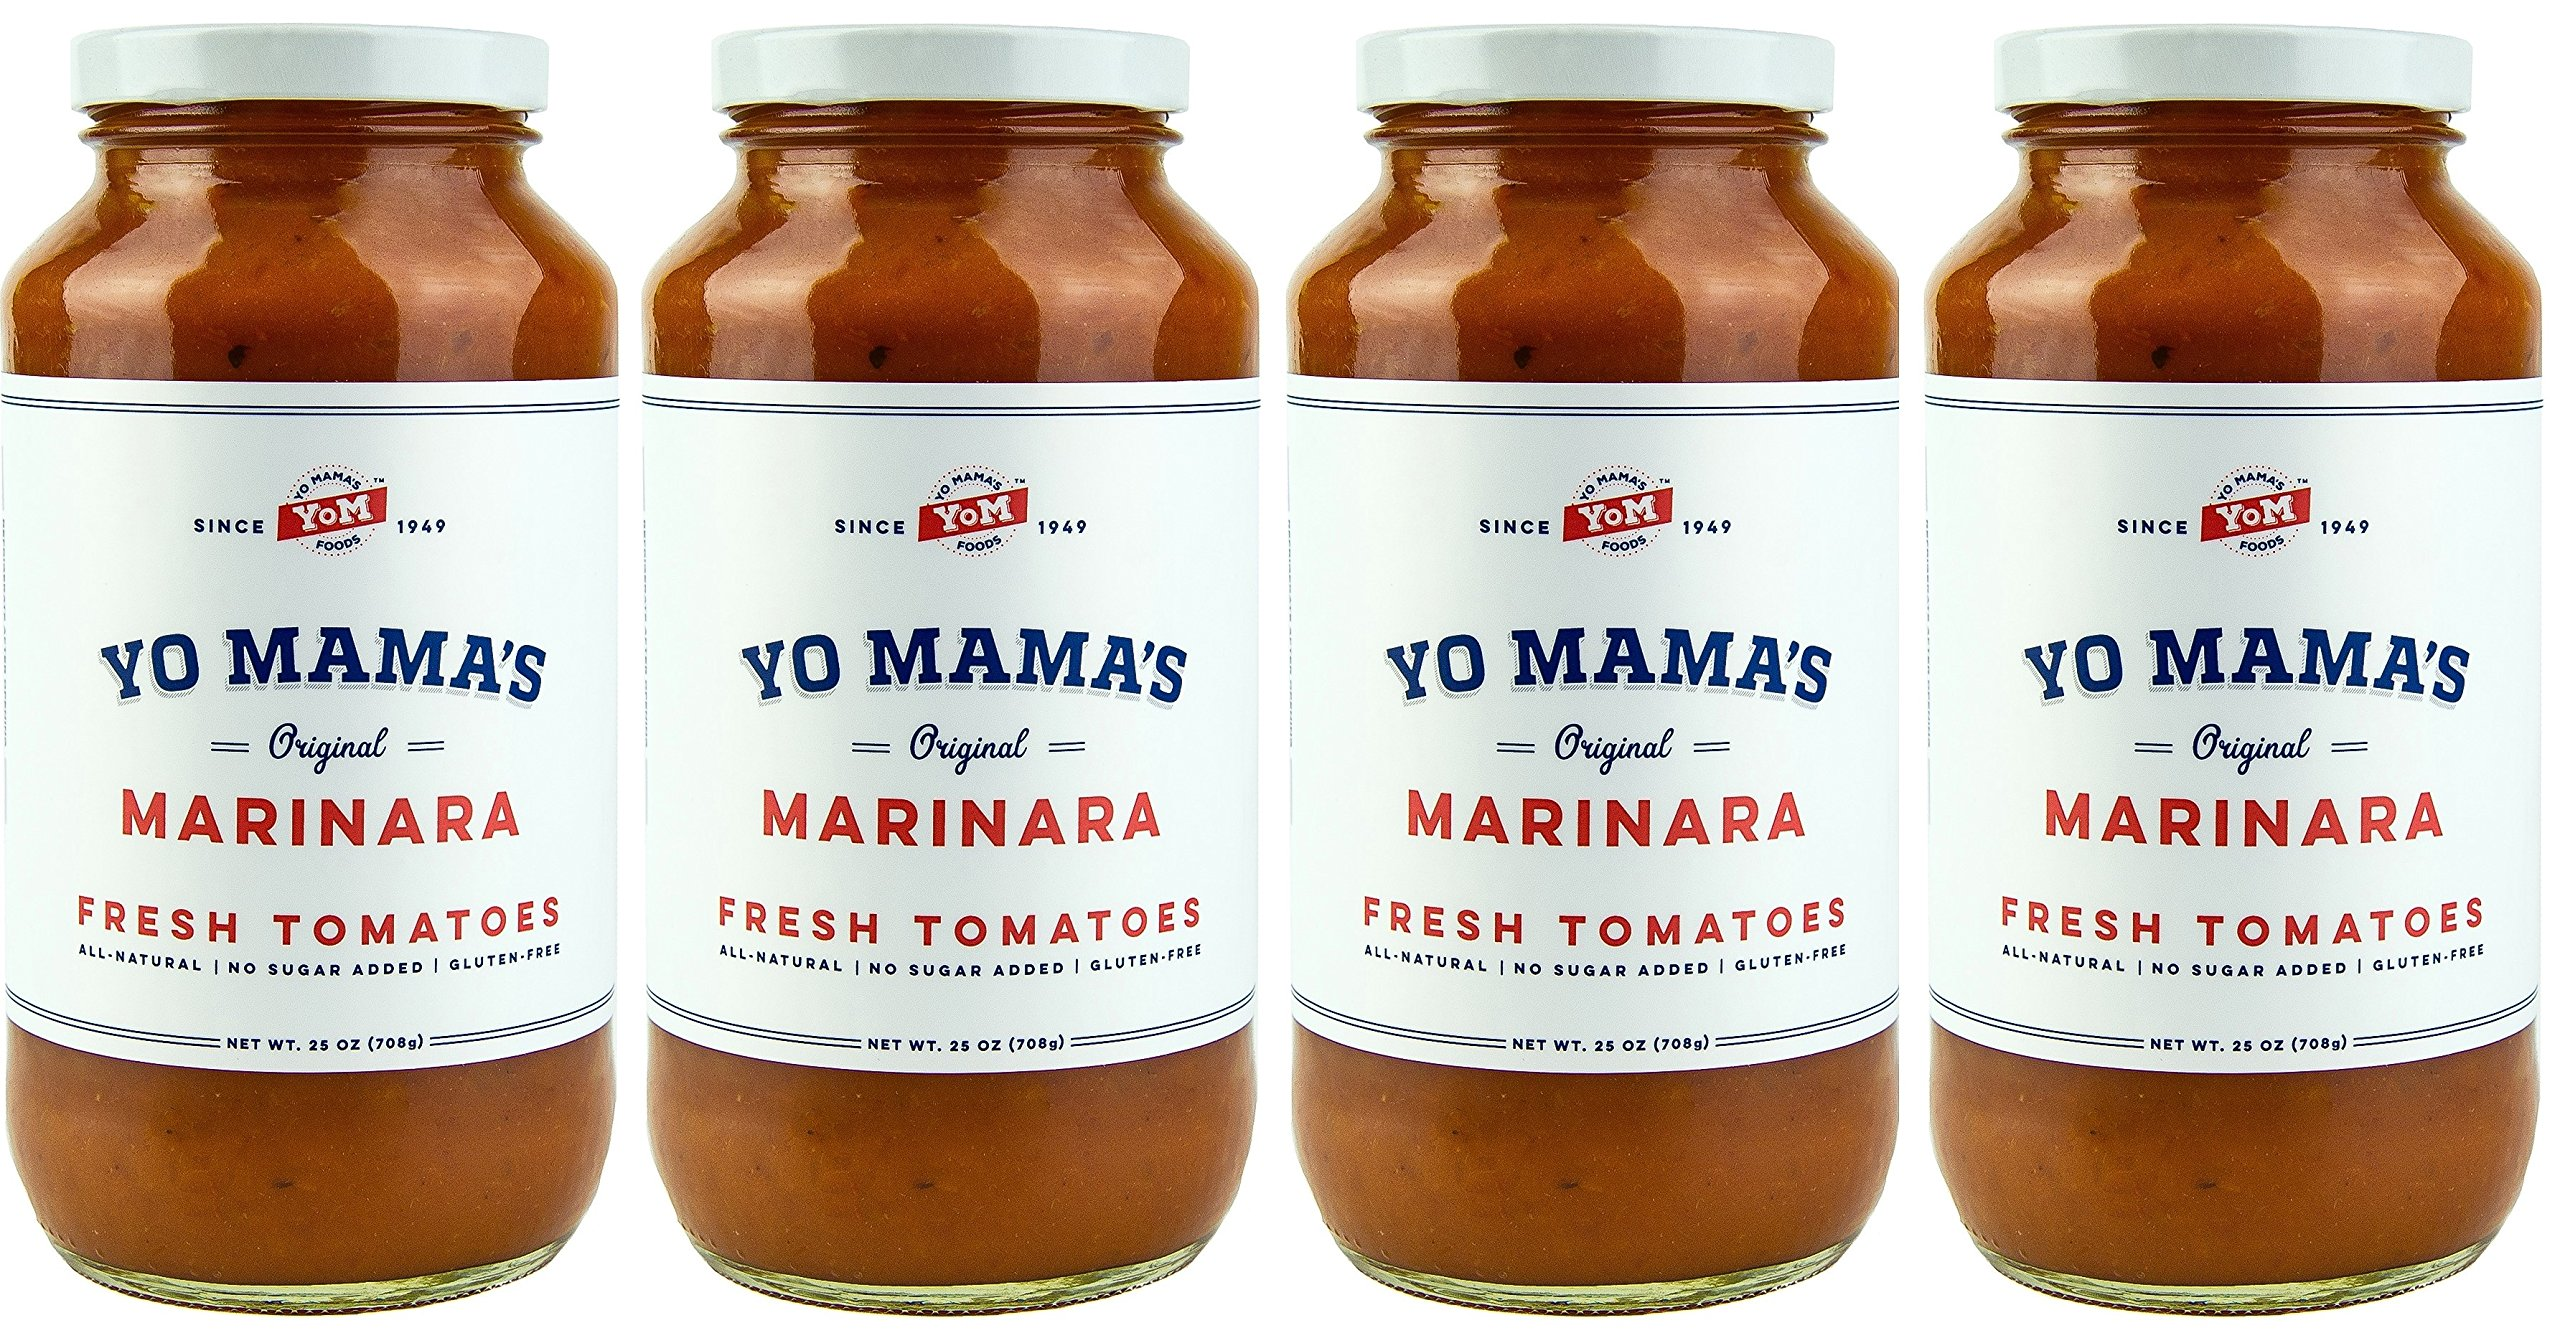 Marinara Magnifica Gourmet Pasta Sauce – (4) 25 oz Jars – Our Award-Winning Sauce is Sugar Free, Gluten Free, Preservative Free, Paleo Friendly, and Made with Whole, Organic Tomatoes!